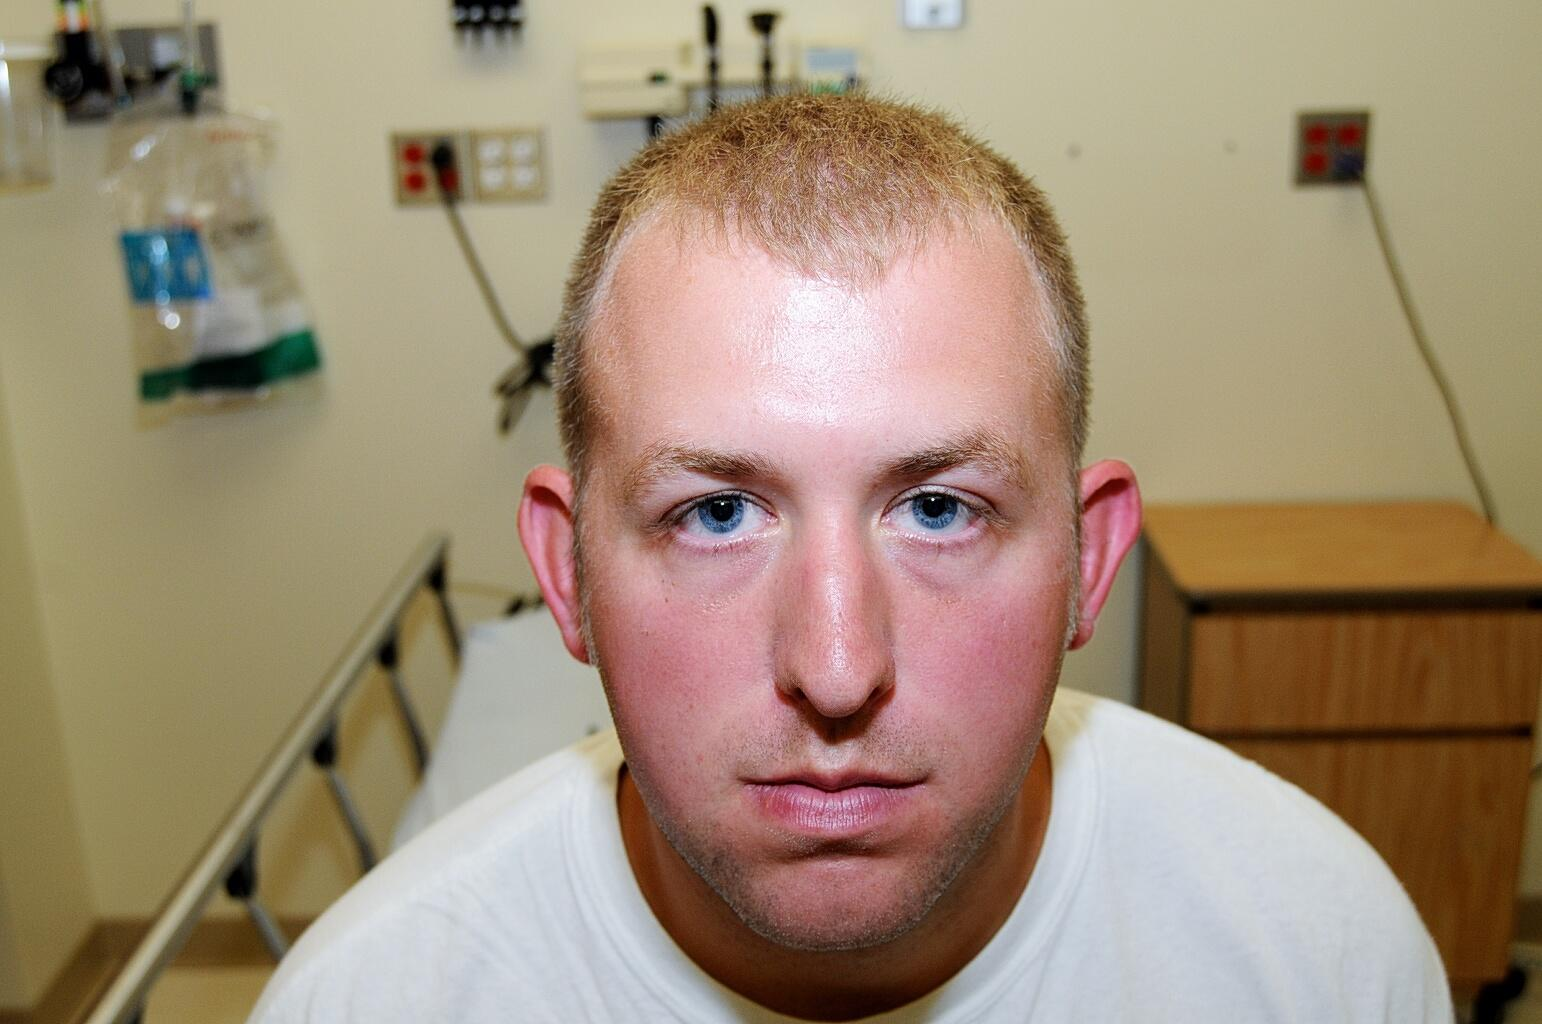 Darren Wilson opens up a year after Michael Brown's death